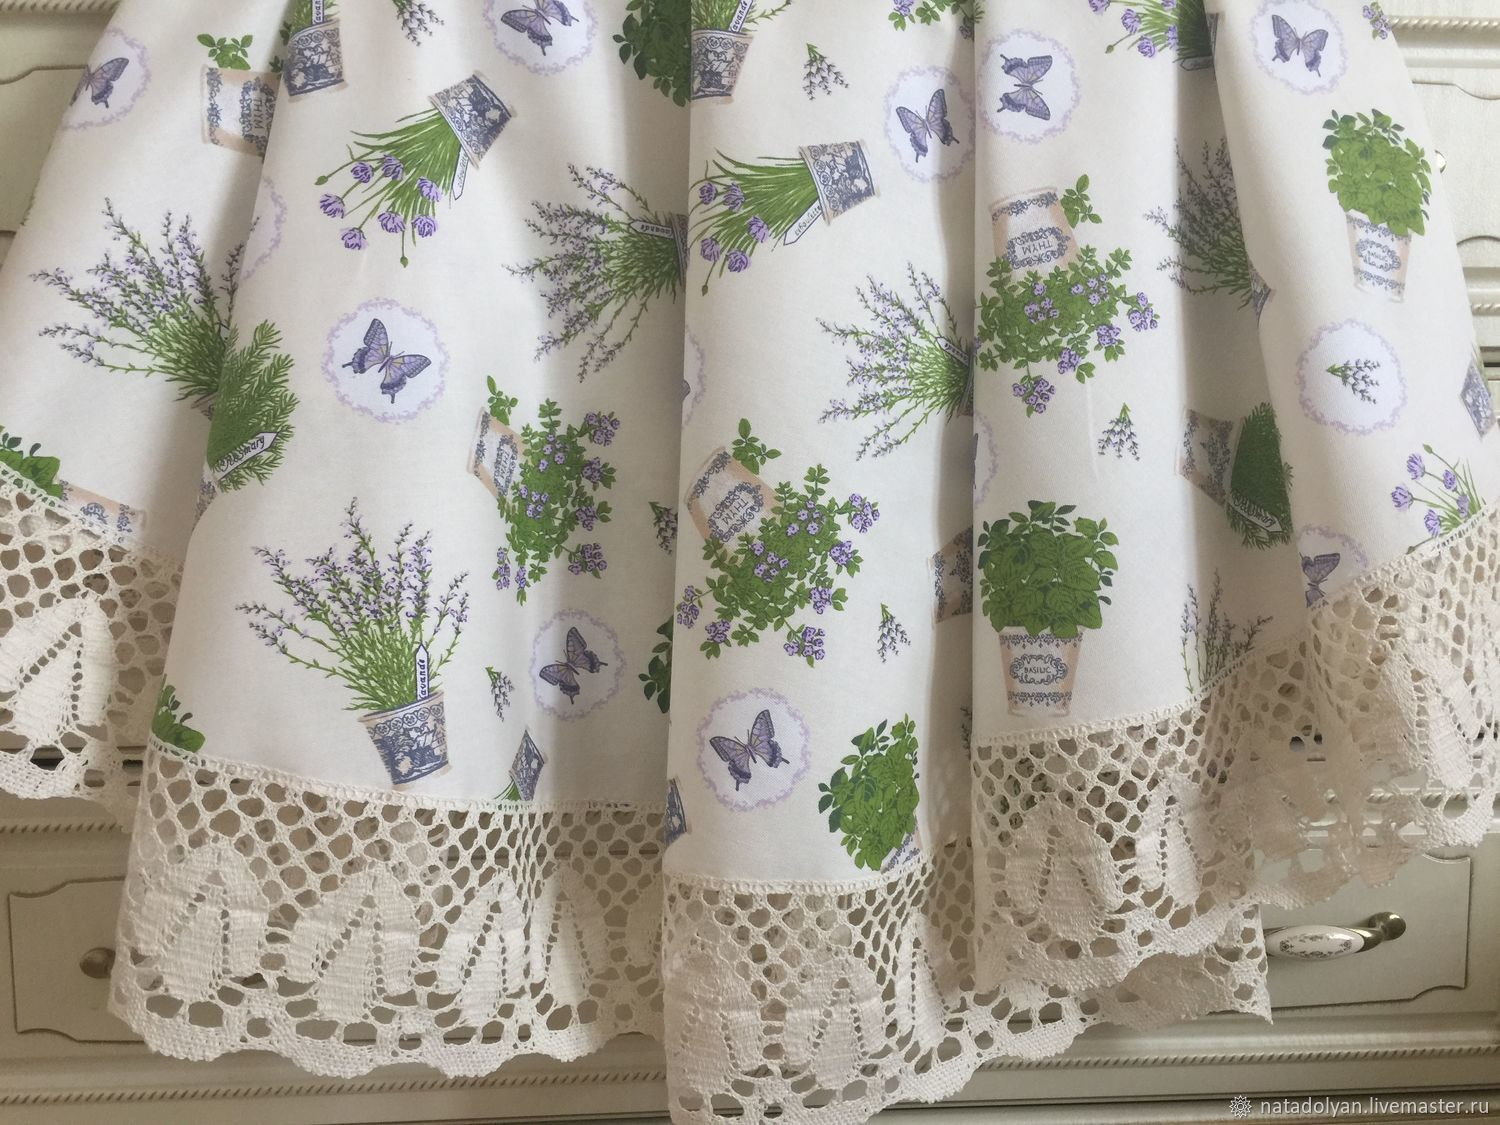 Home Textiles & Carpets handmade. Livemaster - handmade. Buy Tablecloth 'French Provence' in the presence of round.